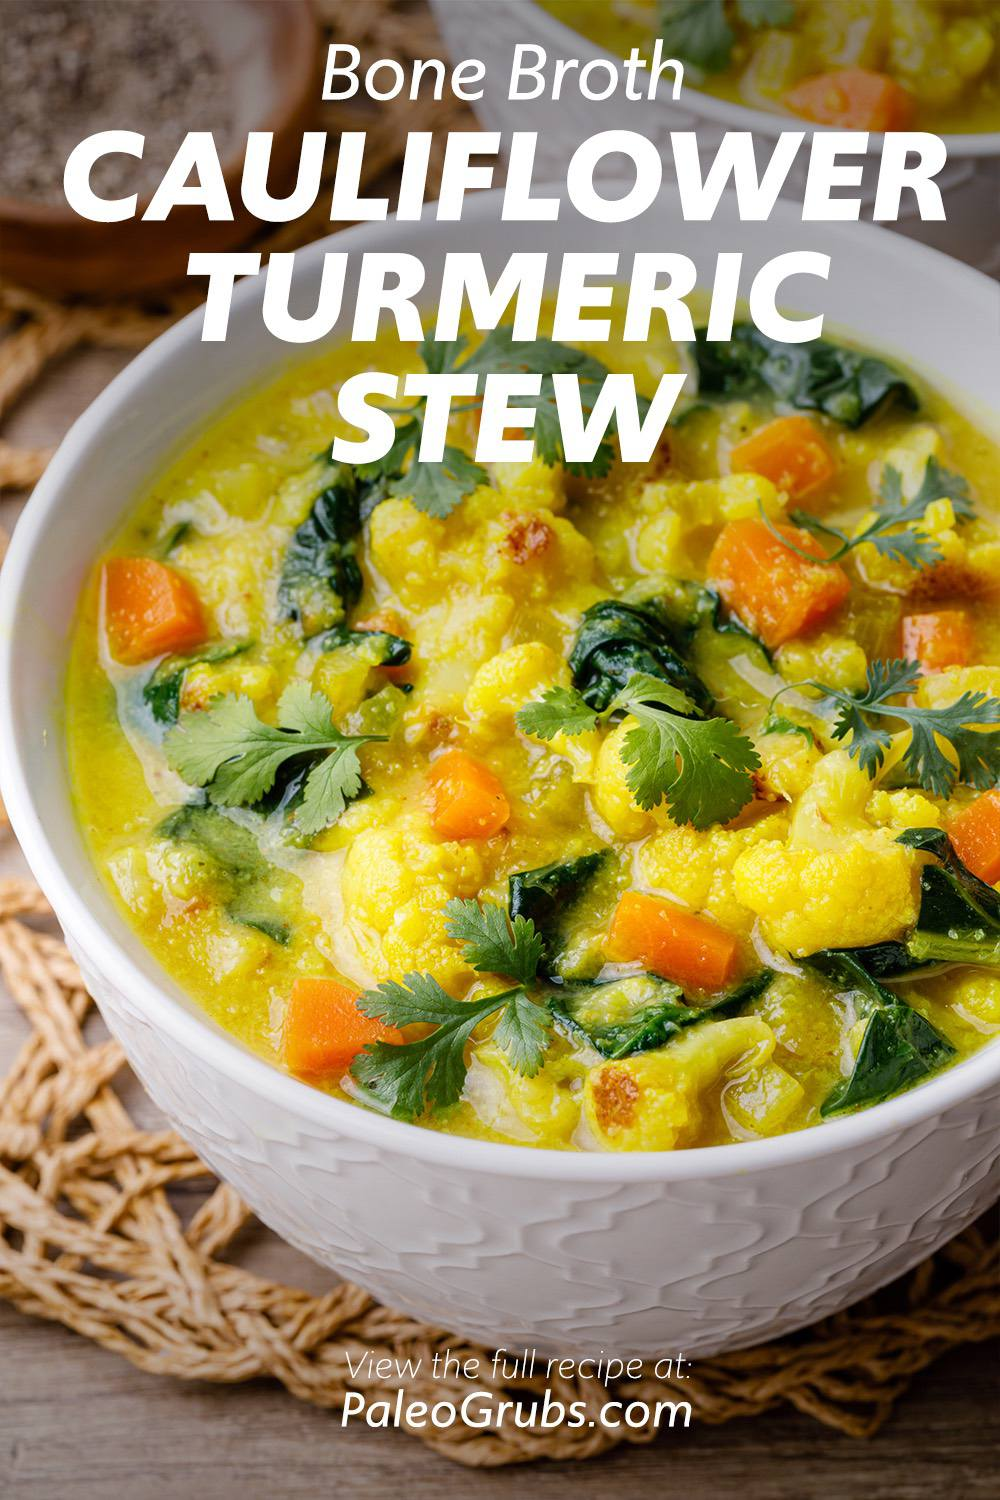 Bone Broth Cauliflower Turmeric Stew to Heal Your Gut